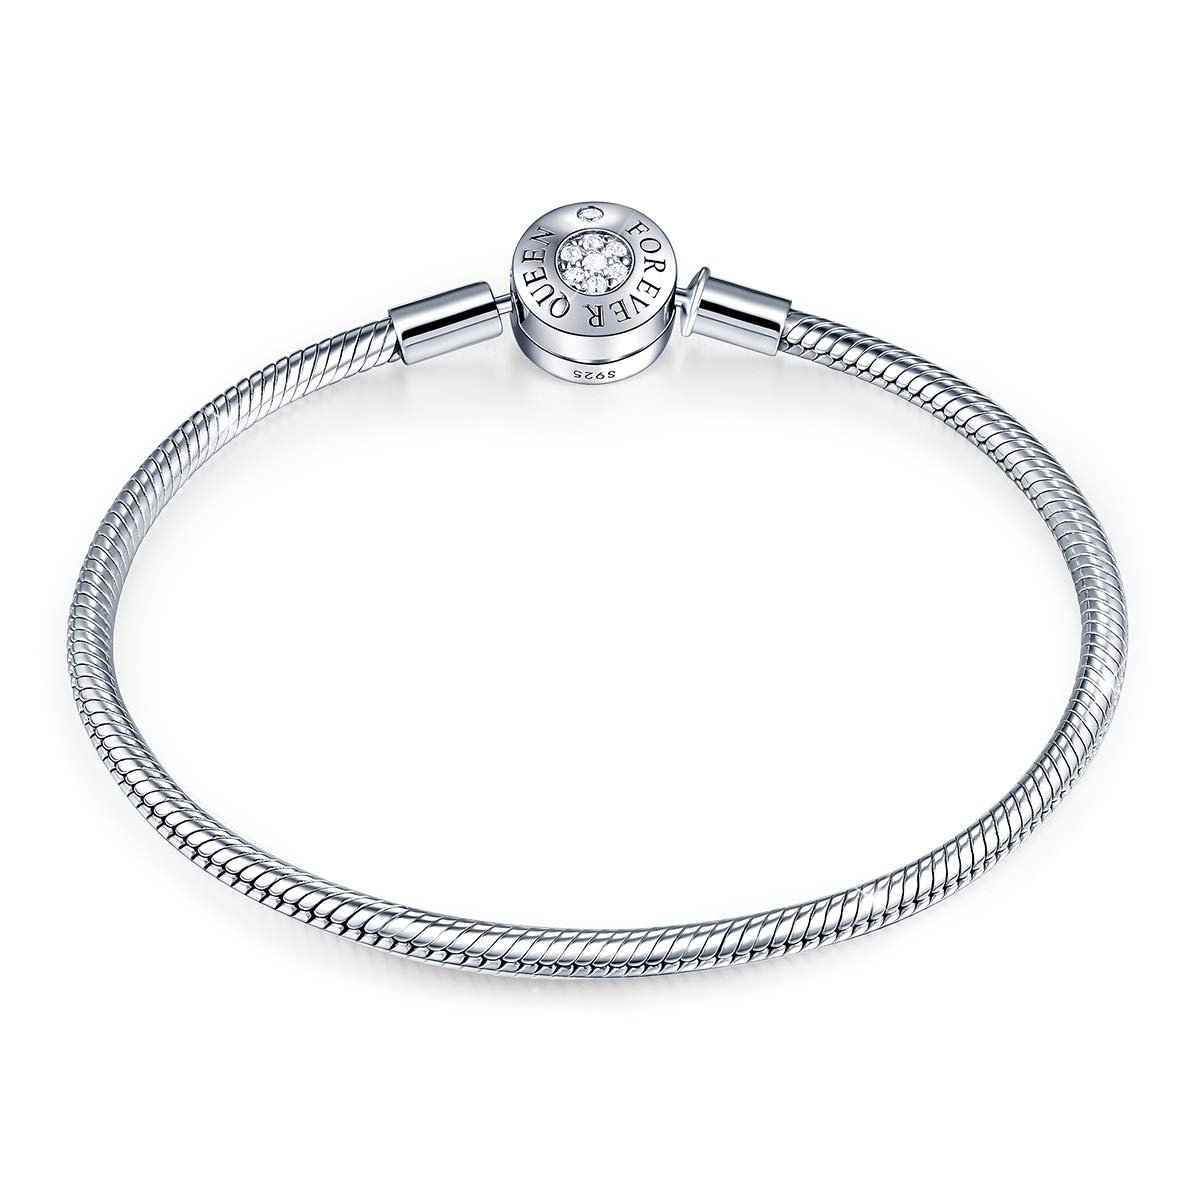 Charm Bracelet Fit Charms 925 Sterling Silver Basic Snake Chain Bracelet for Women Girls, Signature Bracelet with Sparkling Round Clasp Charm Clear CZ FQ00016 (7.5in/19cm (Updated Version))